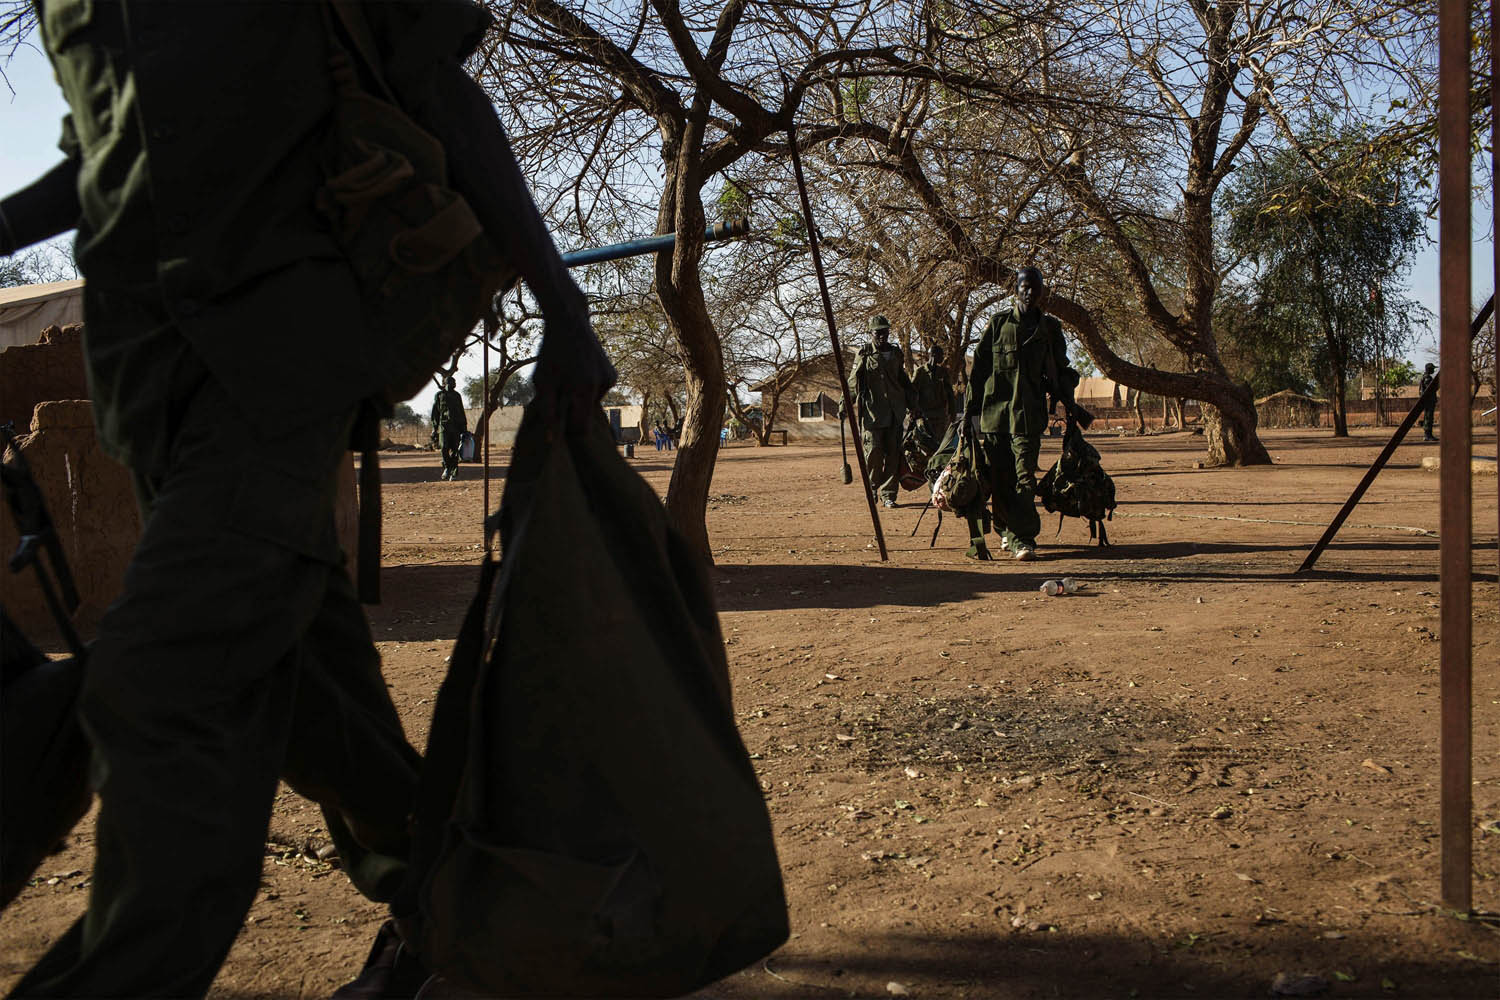 Feb. 14, 2014. Sudan People's Liberation Army (SPLA) government soldiers from the 2nd Brigade 6th Division prepare to go on a patrol at the SPLA headquarters near Yirol, South Sudan,